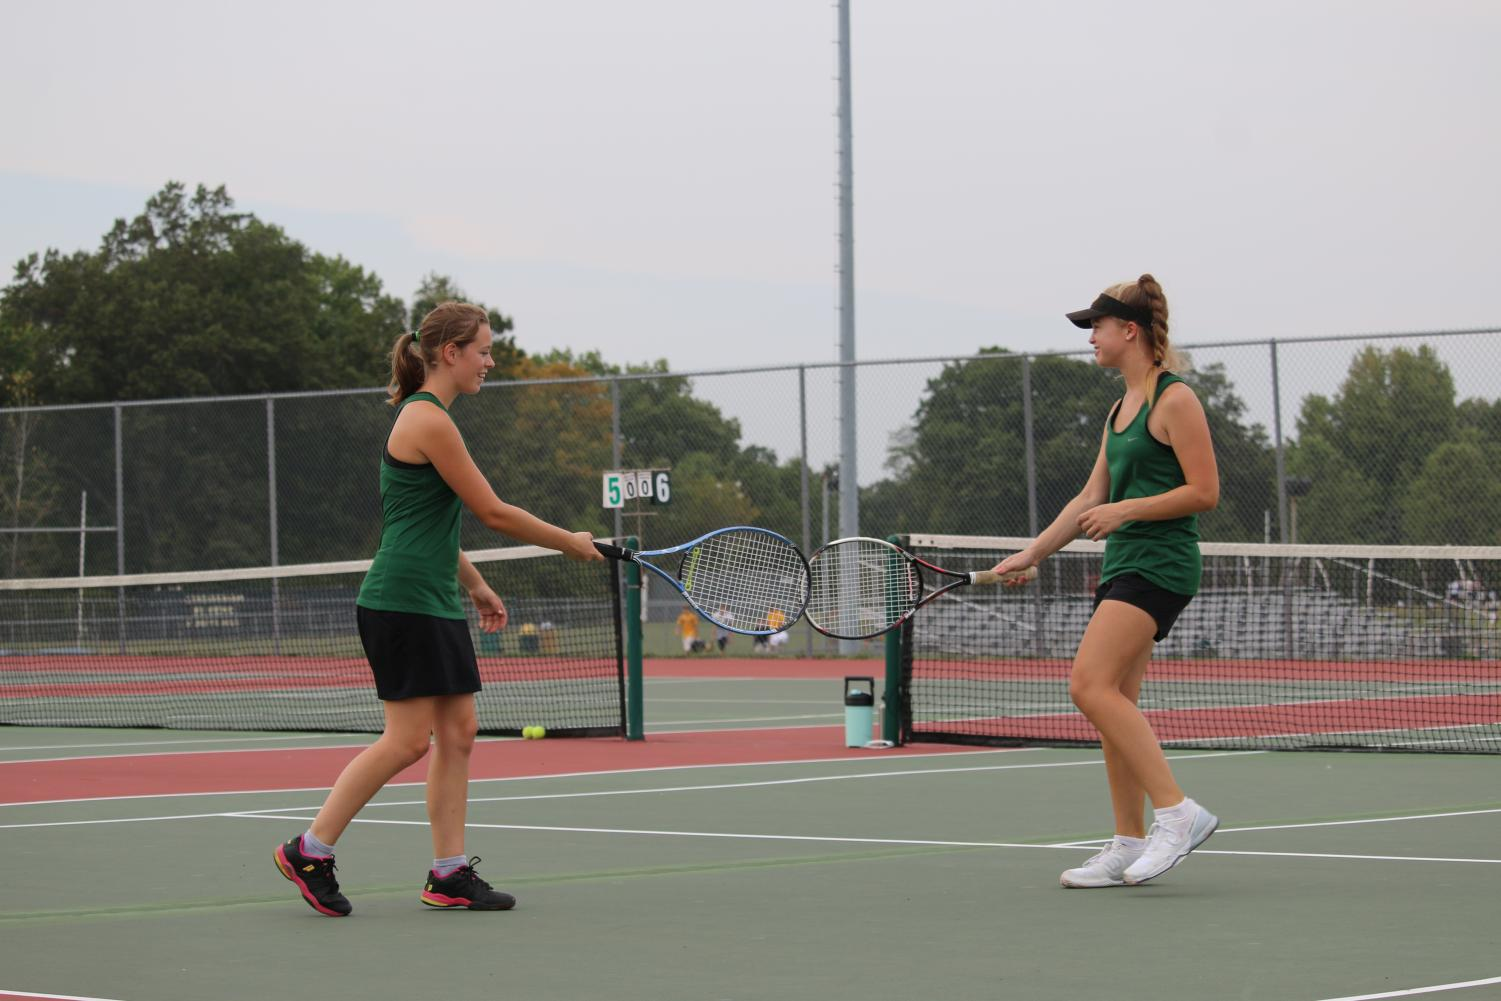 Melanie Ford (12) and her partner exchange a racquet tap after a match well played.